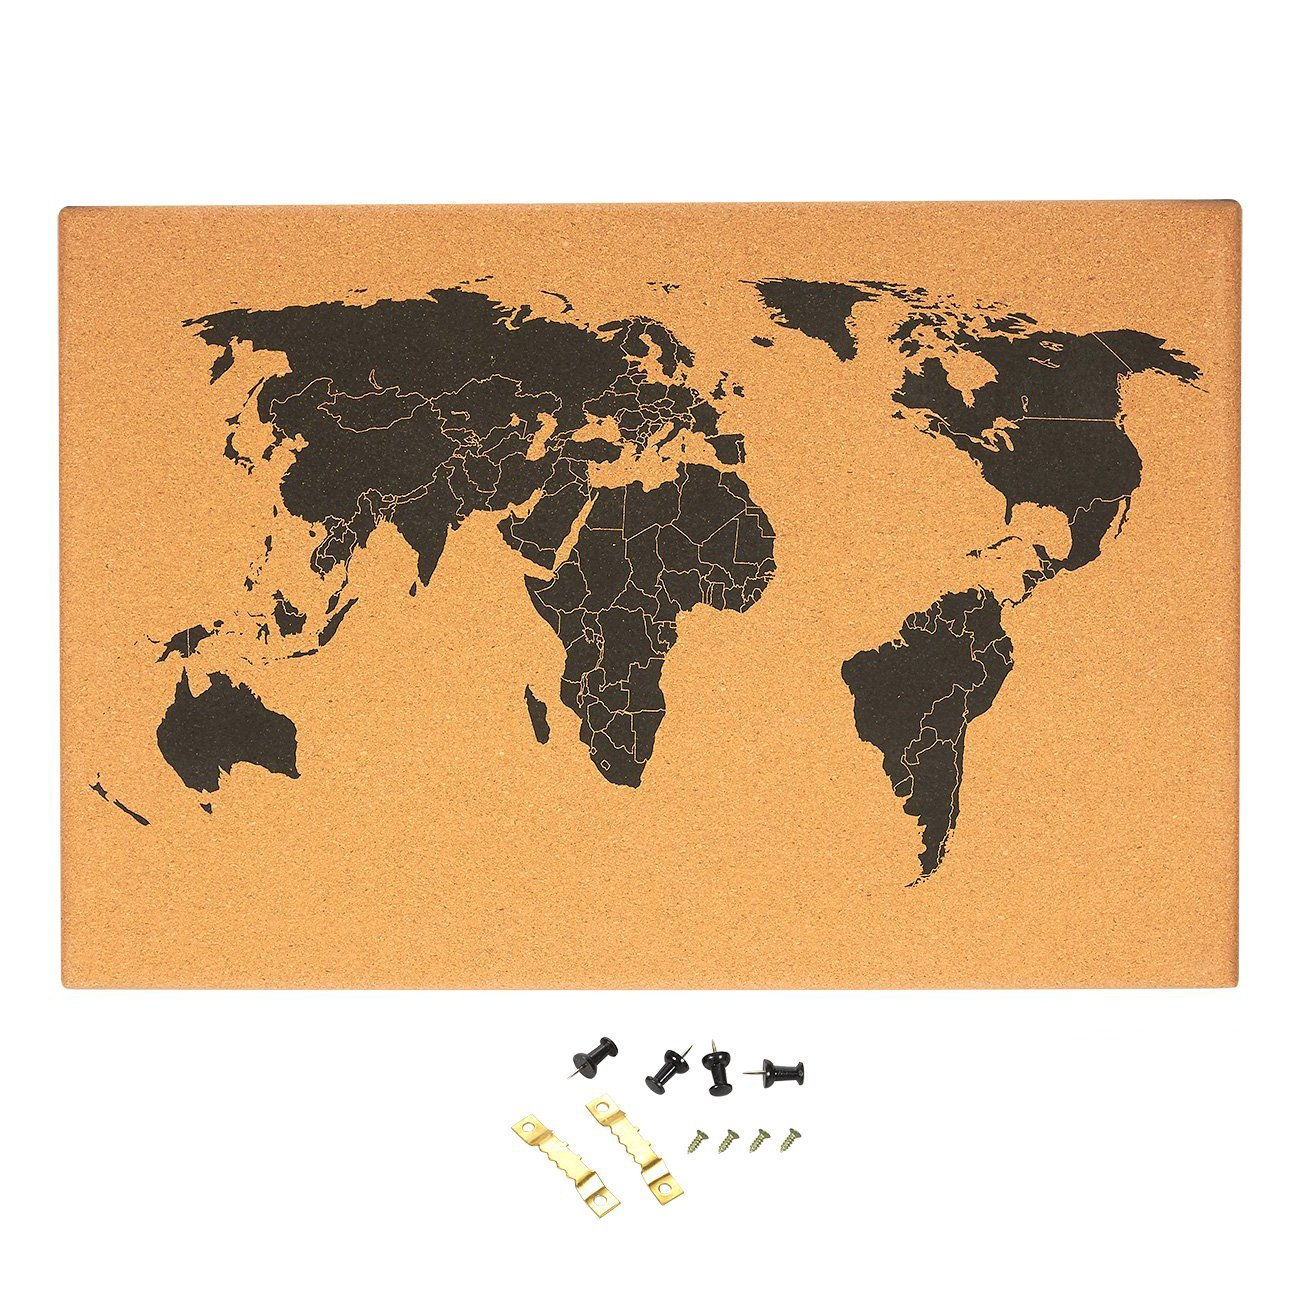 Cork board map of the world wall mount bulletin board with cork board map of the world wall mount bulletin board with detailed world map gumiabroncs Choice Image